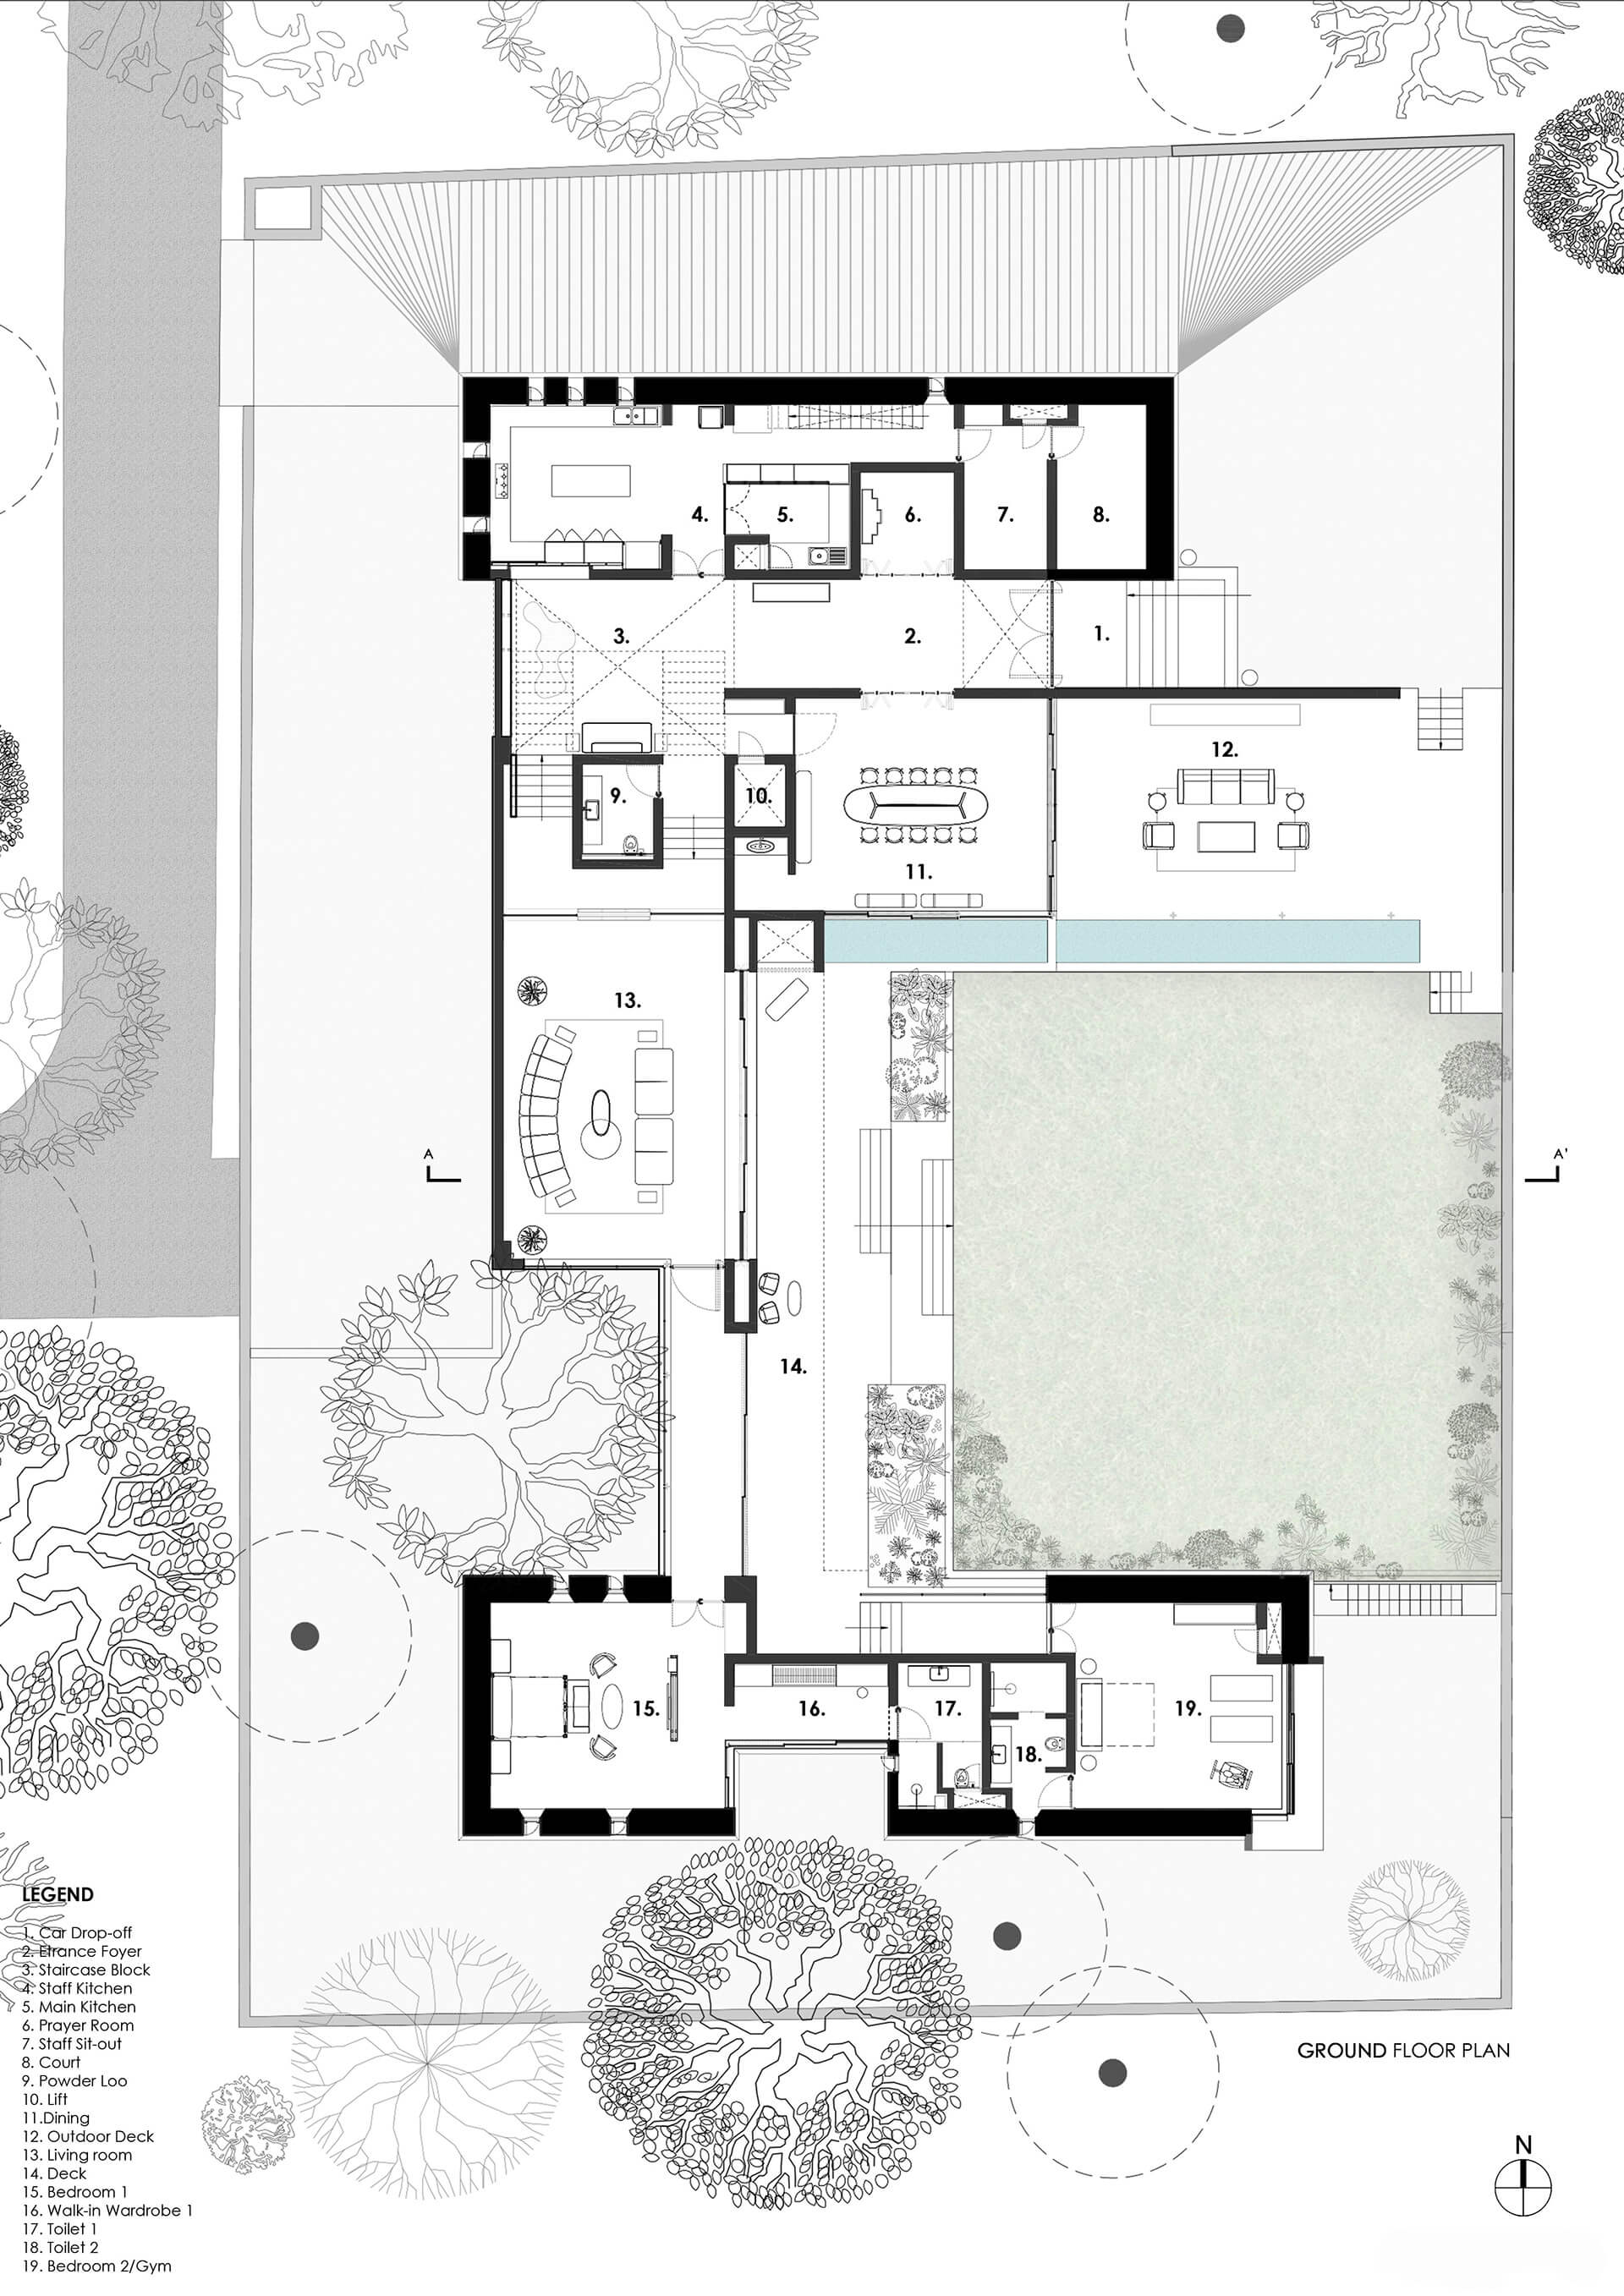 Ground floor plan of the Black Bastion house designed by SPASM Design in Coimbatore, Tamil Nadu, India | Spasm Design | STIRworld